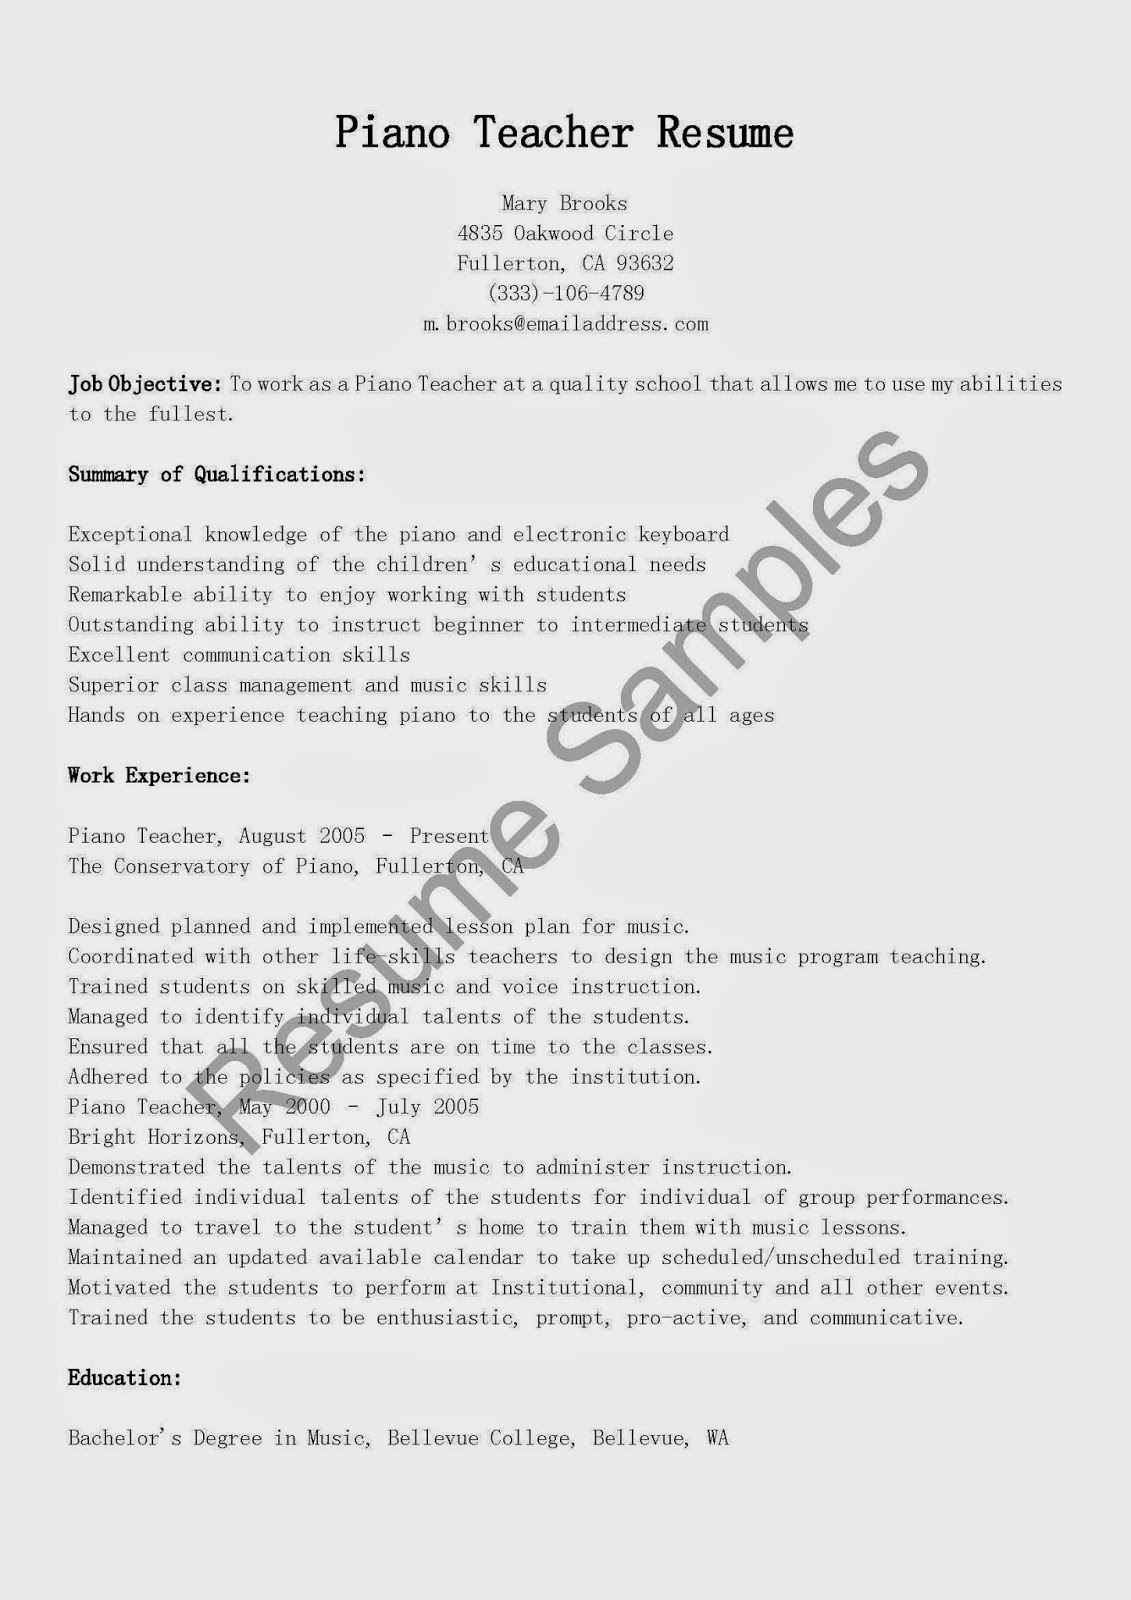 resume samples  piano teacher resume sample